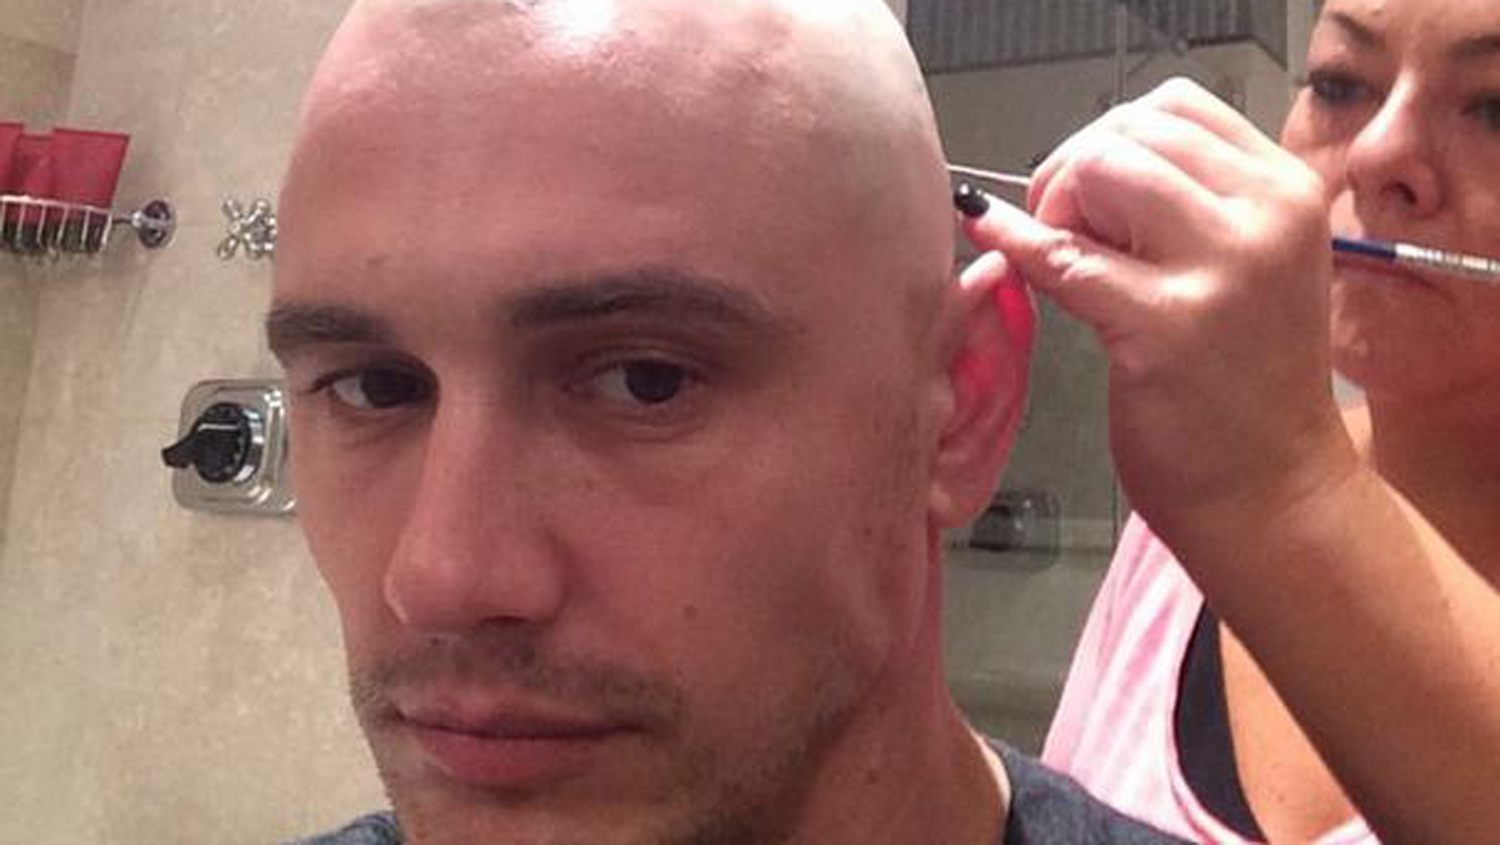 James Franco shaves head shares bald selfies on Instagram